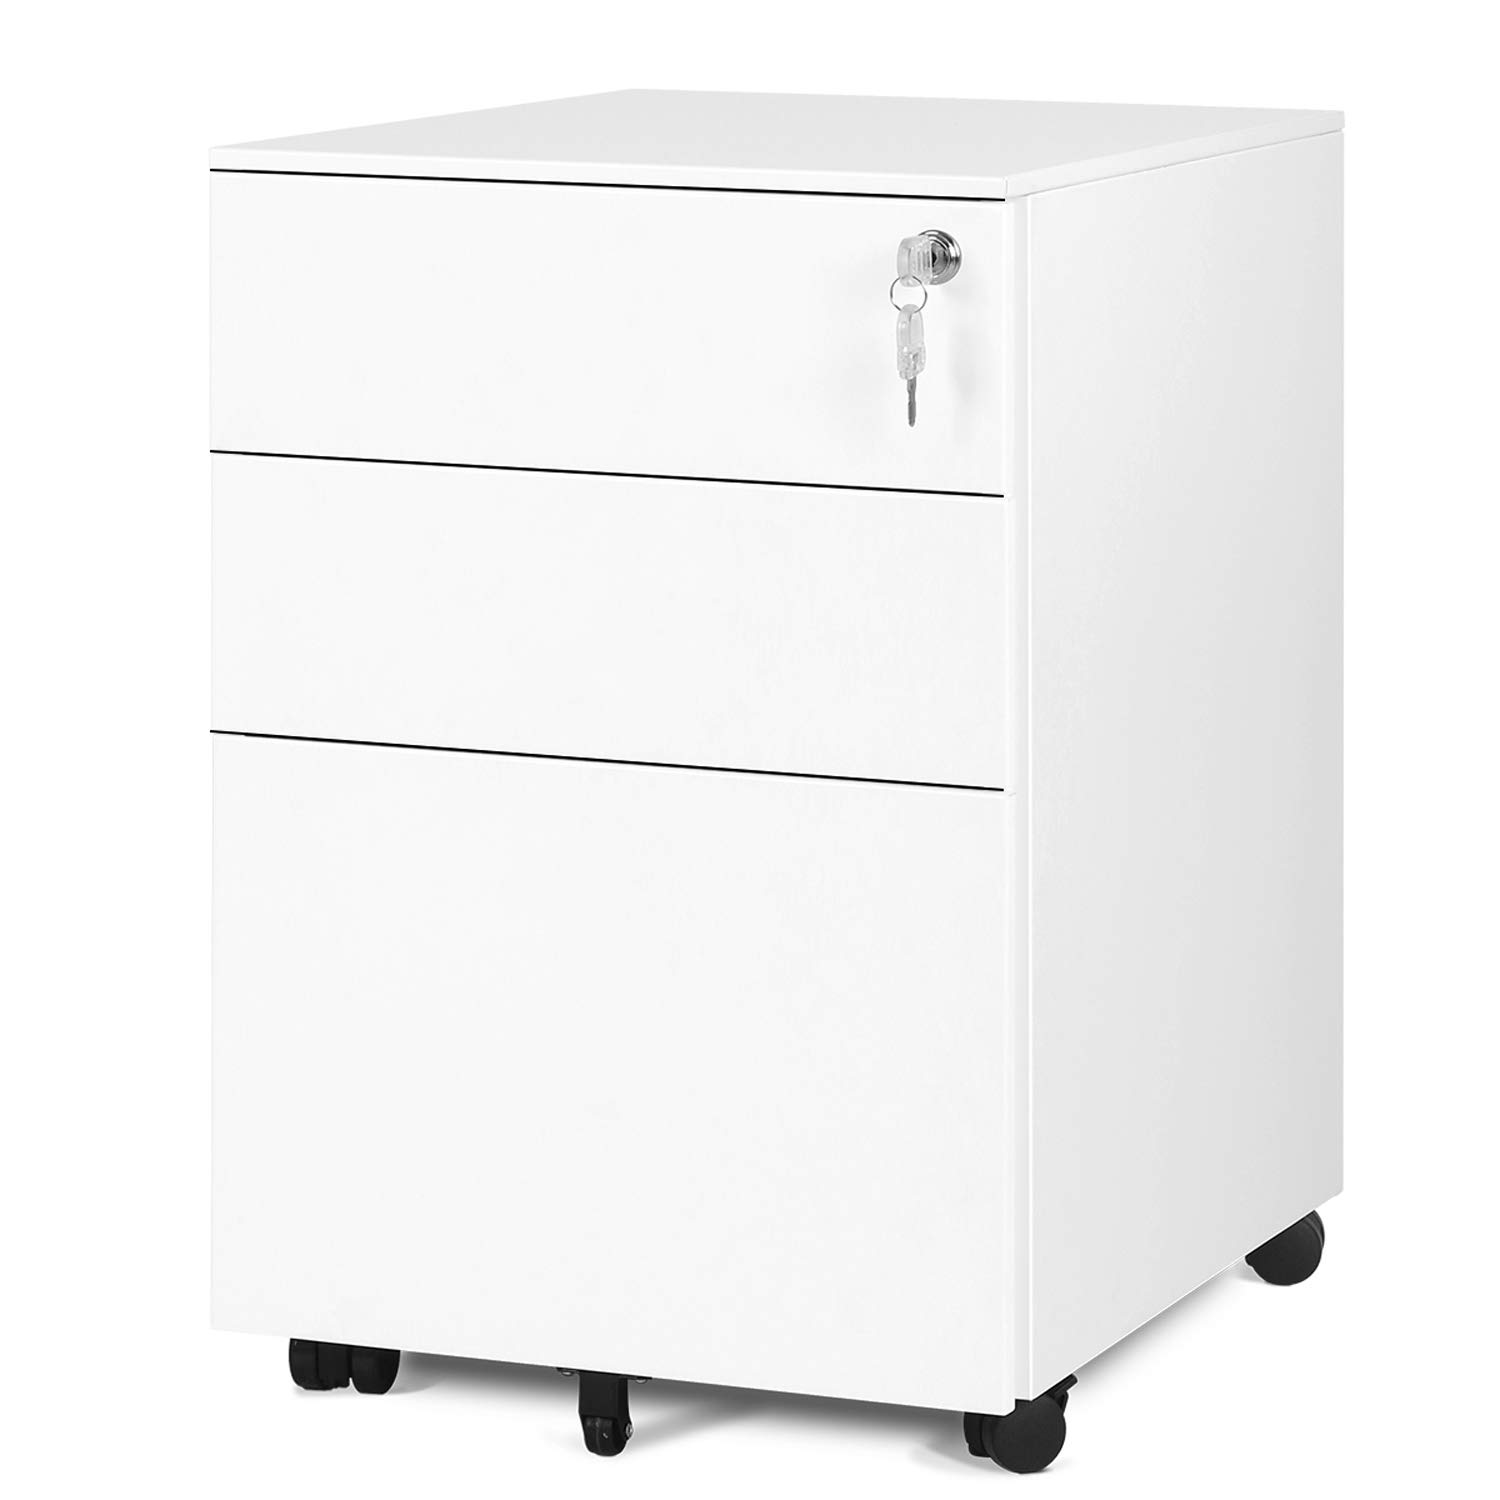 DEVAISE Locking File Cabinet, 3 Drawer Rolling Pedestal Cabinet, Fully Assembled Except Caster, White